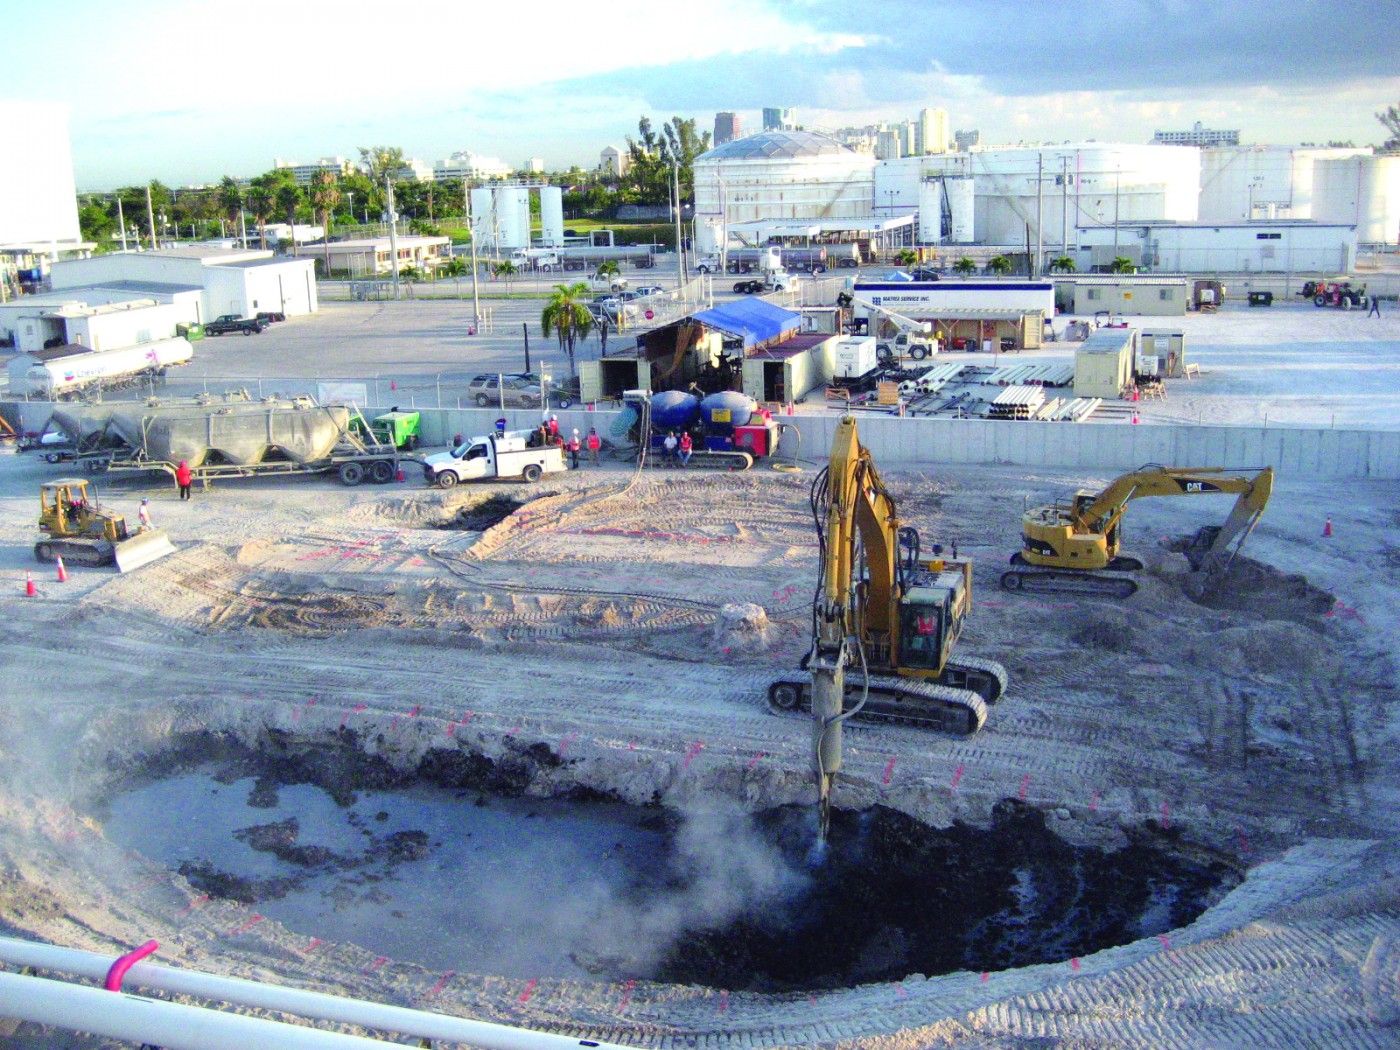 Port Everglades Fuel Storage Tanks dry soil mixing